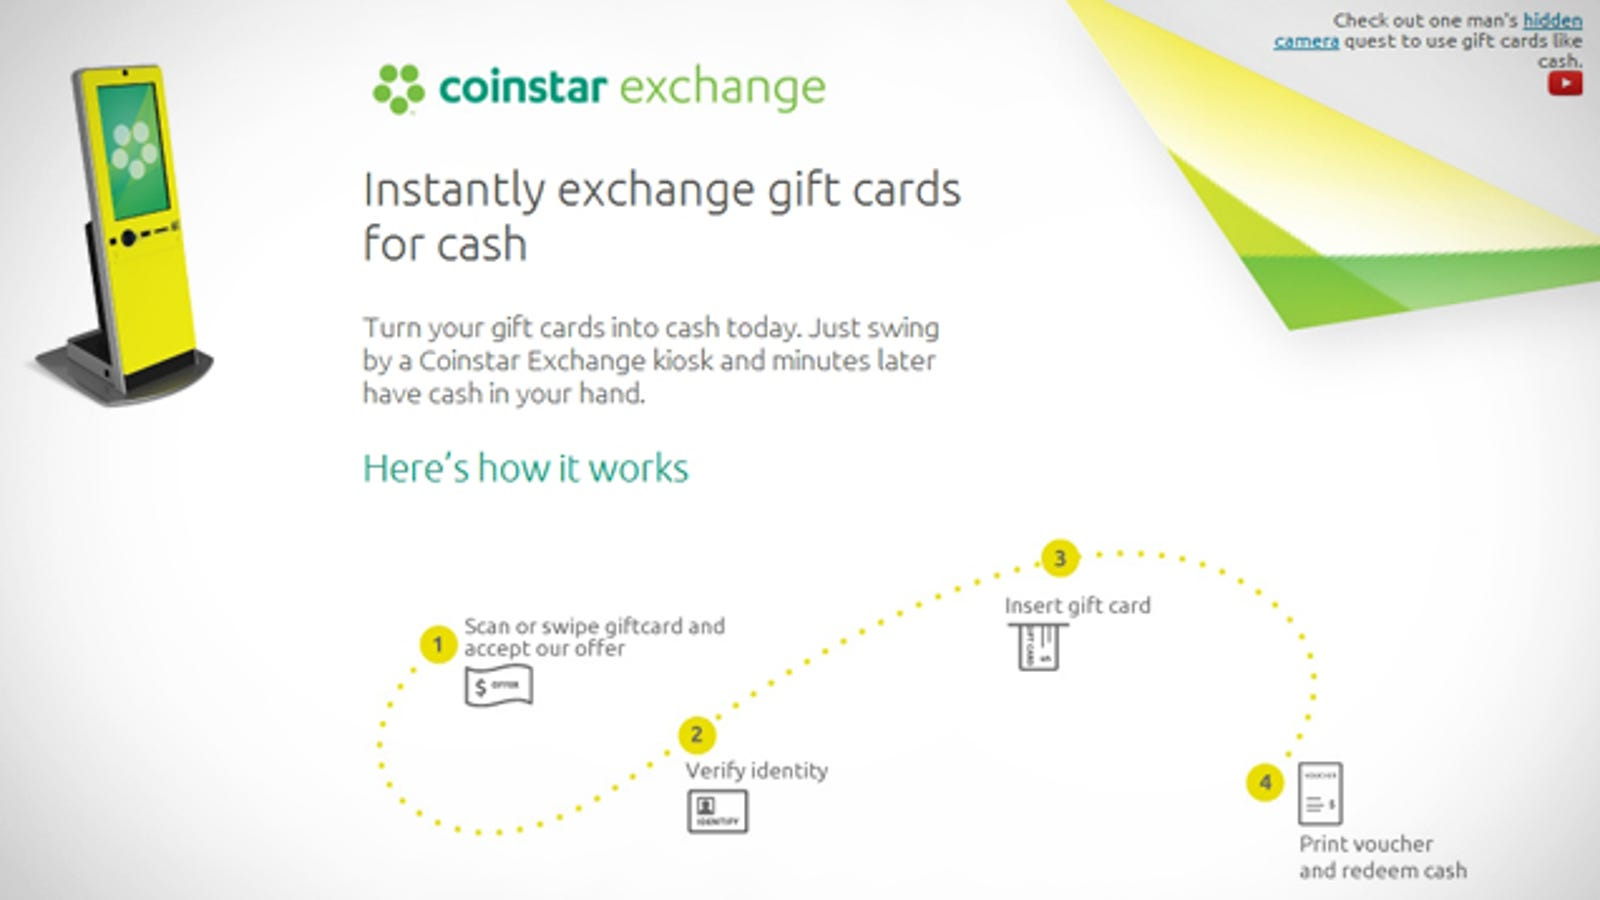 Coinstar Exchange Kiosks Take Your Unused Gift Cards for